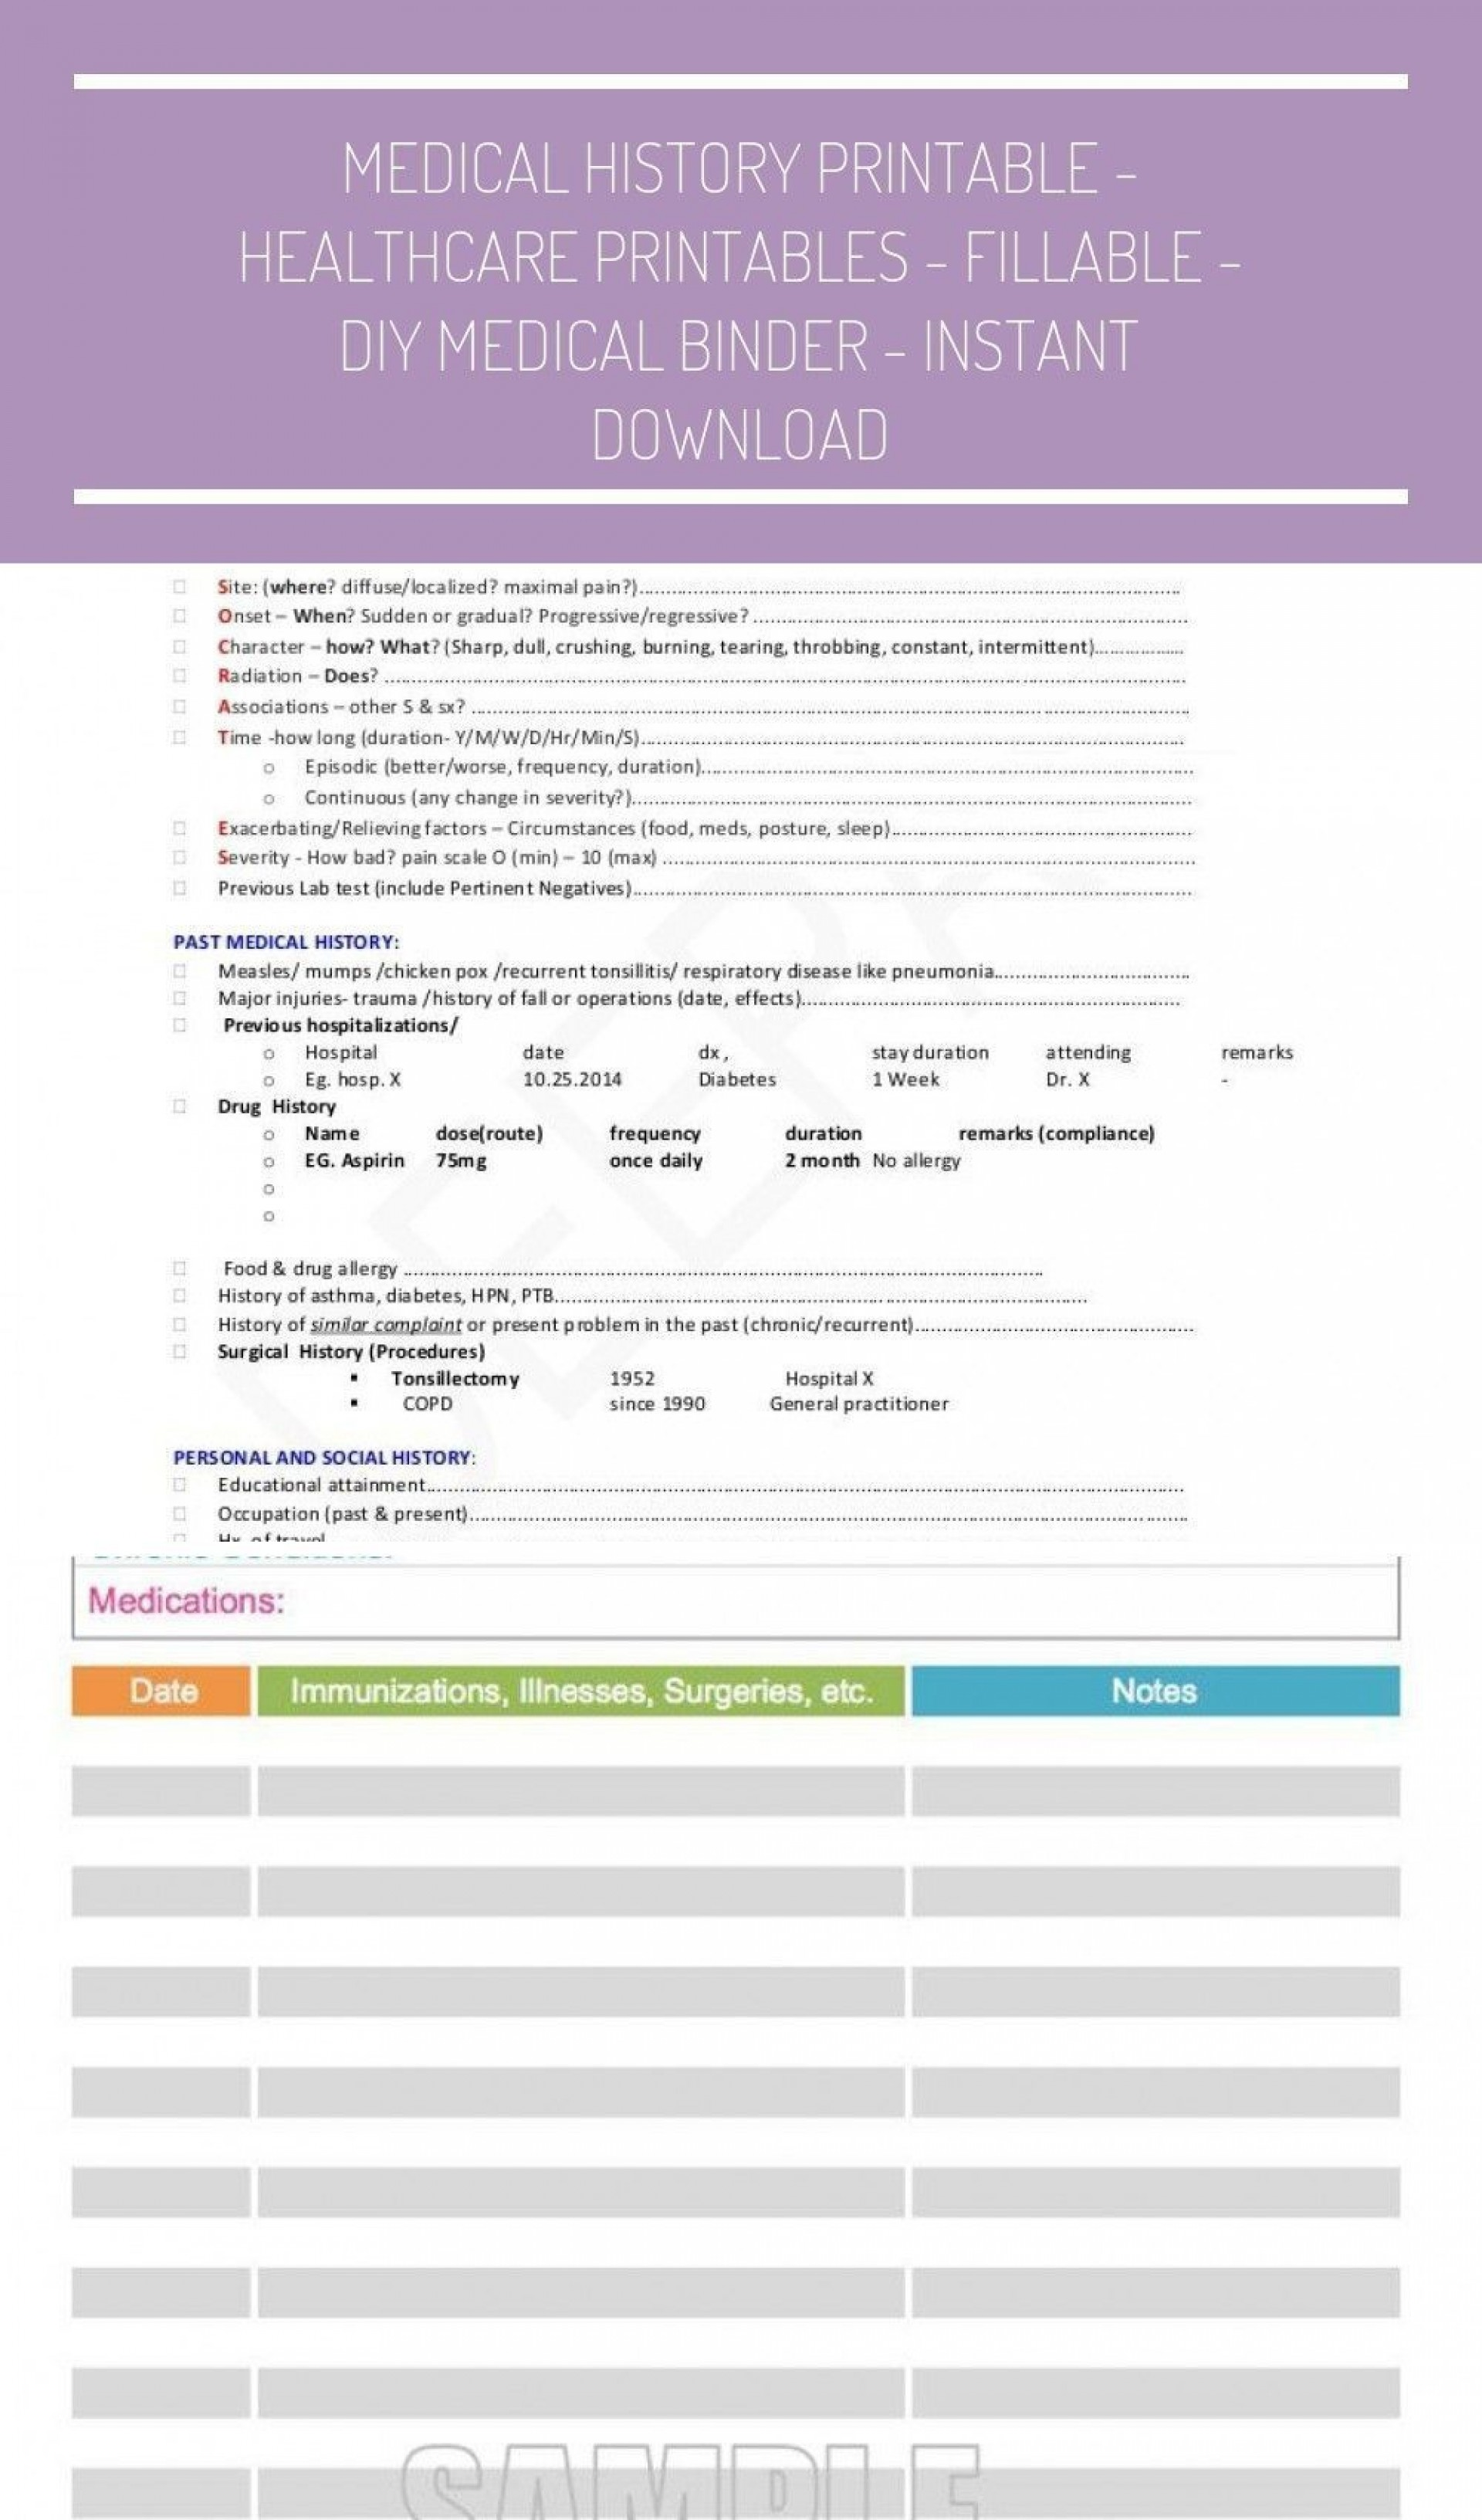 001 Marvelou Personal Medical History Template Download Inspiration 1920